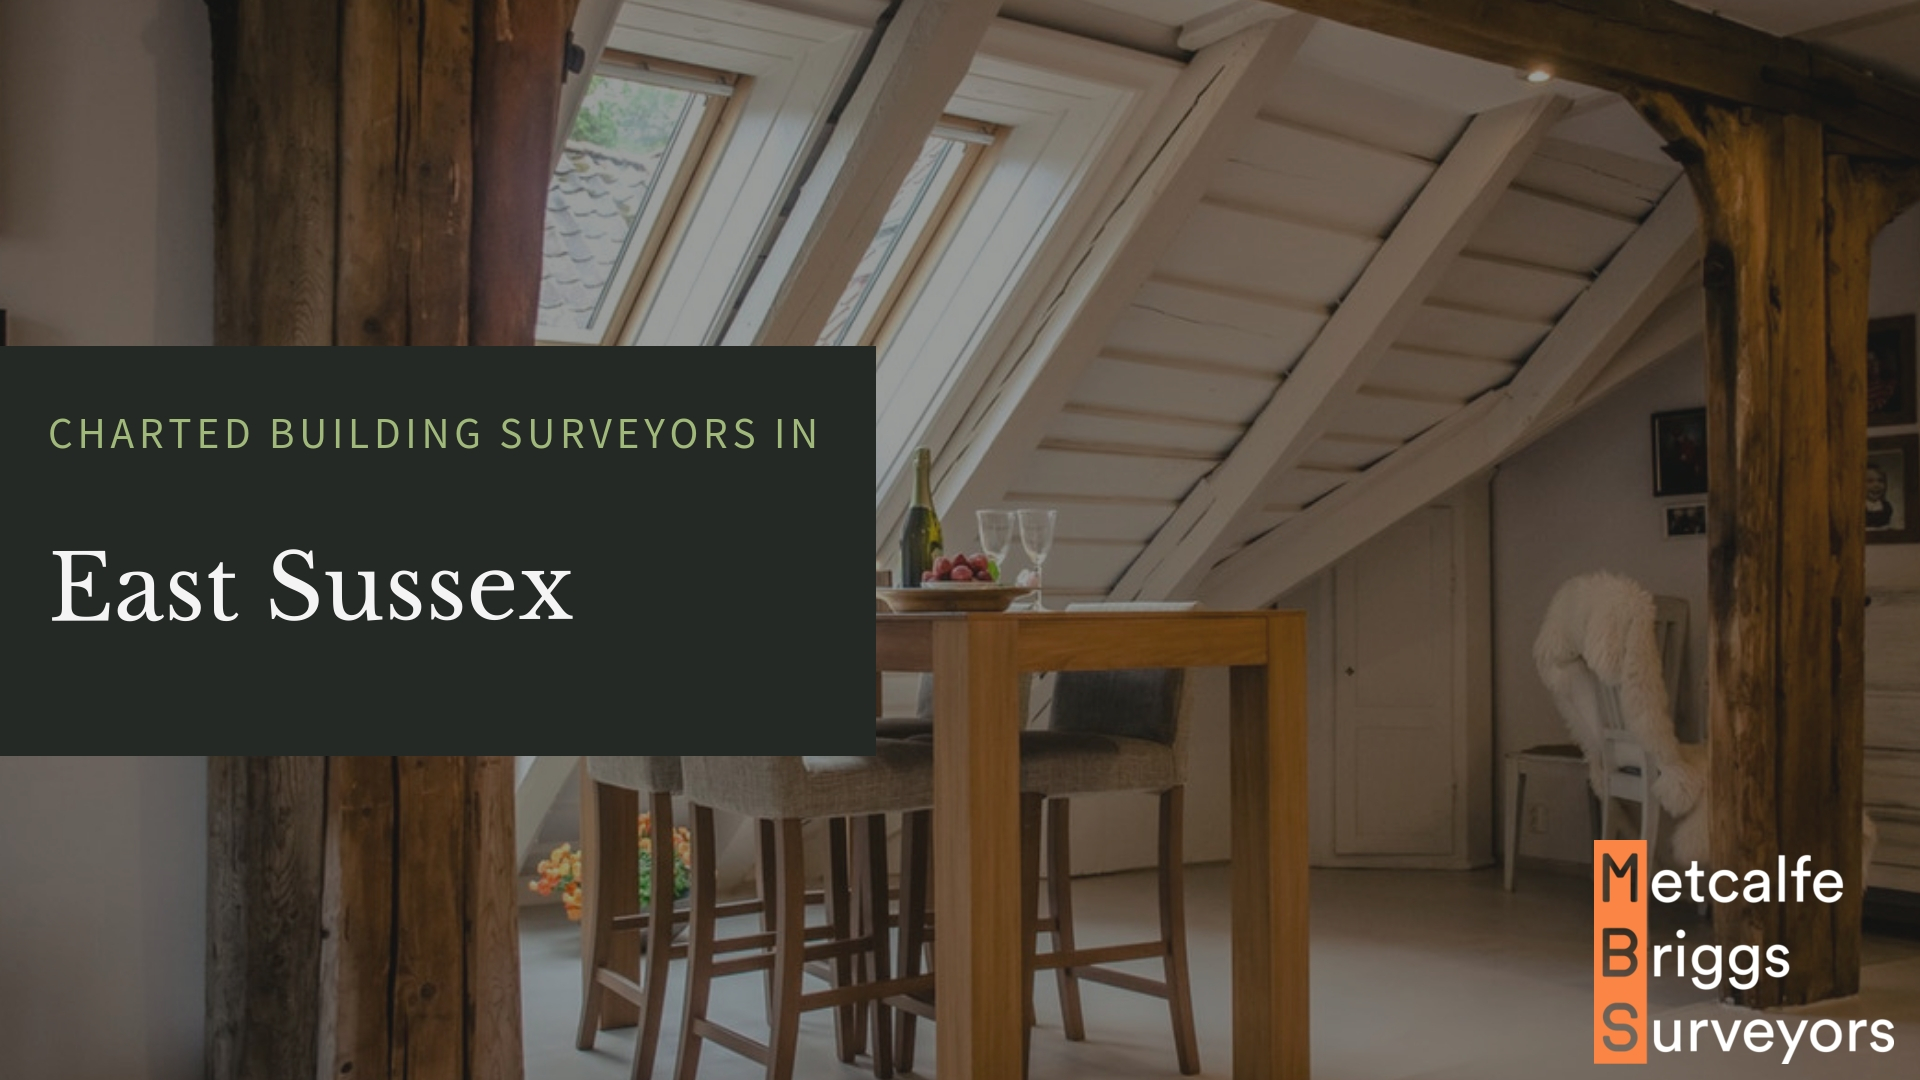 surveying-services-east-sussex.jpg